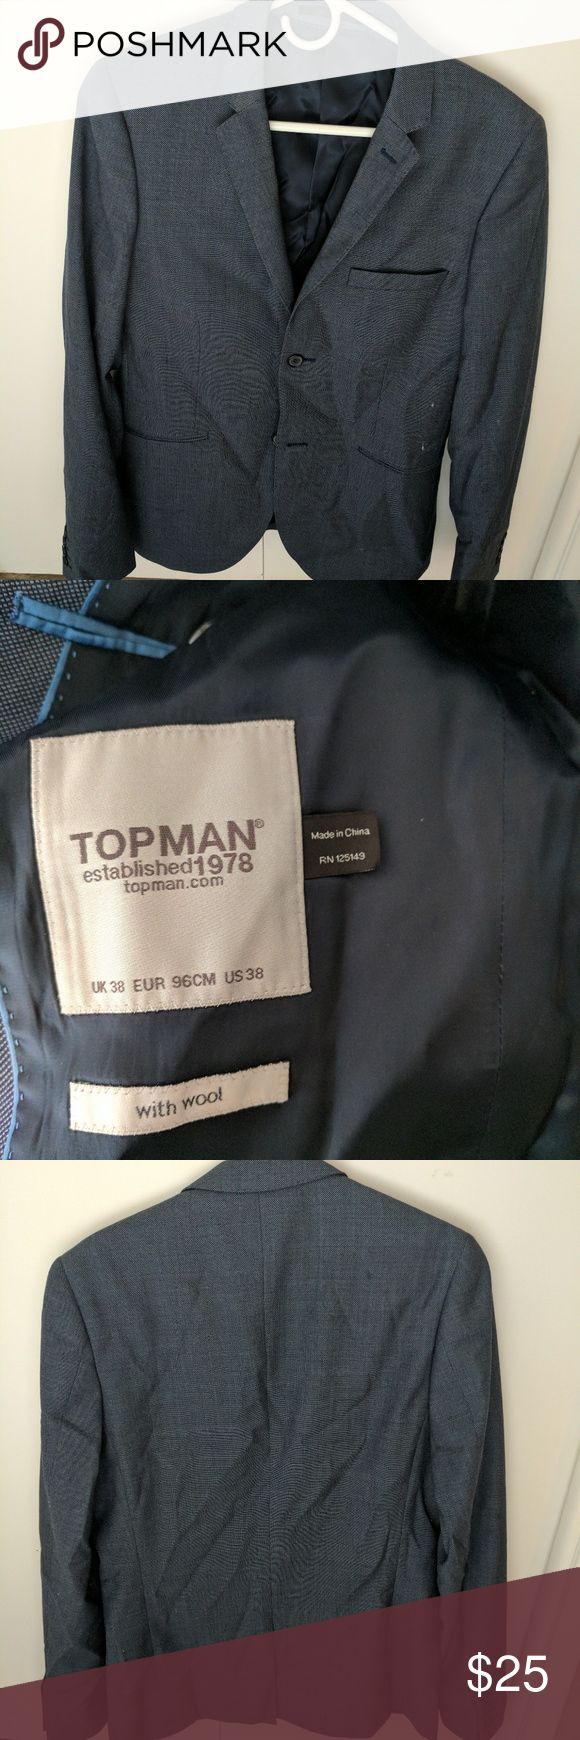 Sportcoat in blue Double button men's wool dinner jacket from topman. Good condition, may need to be washed. Men's size 38 Topman Jackets & Coats